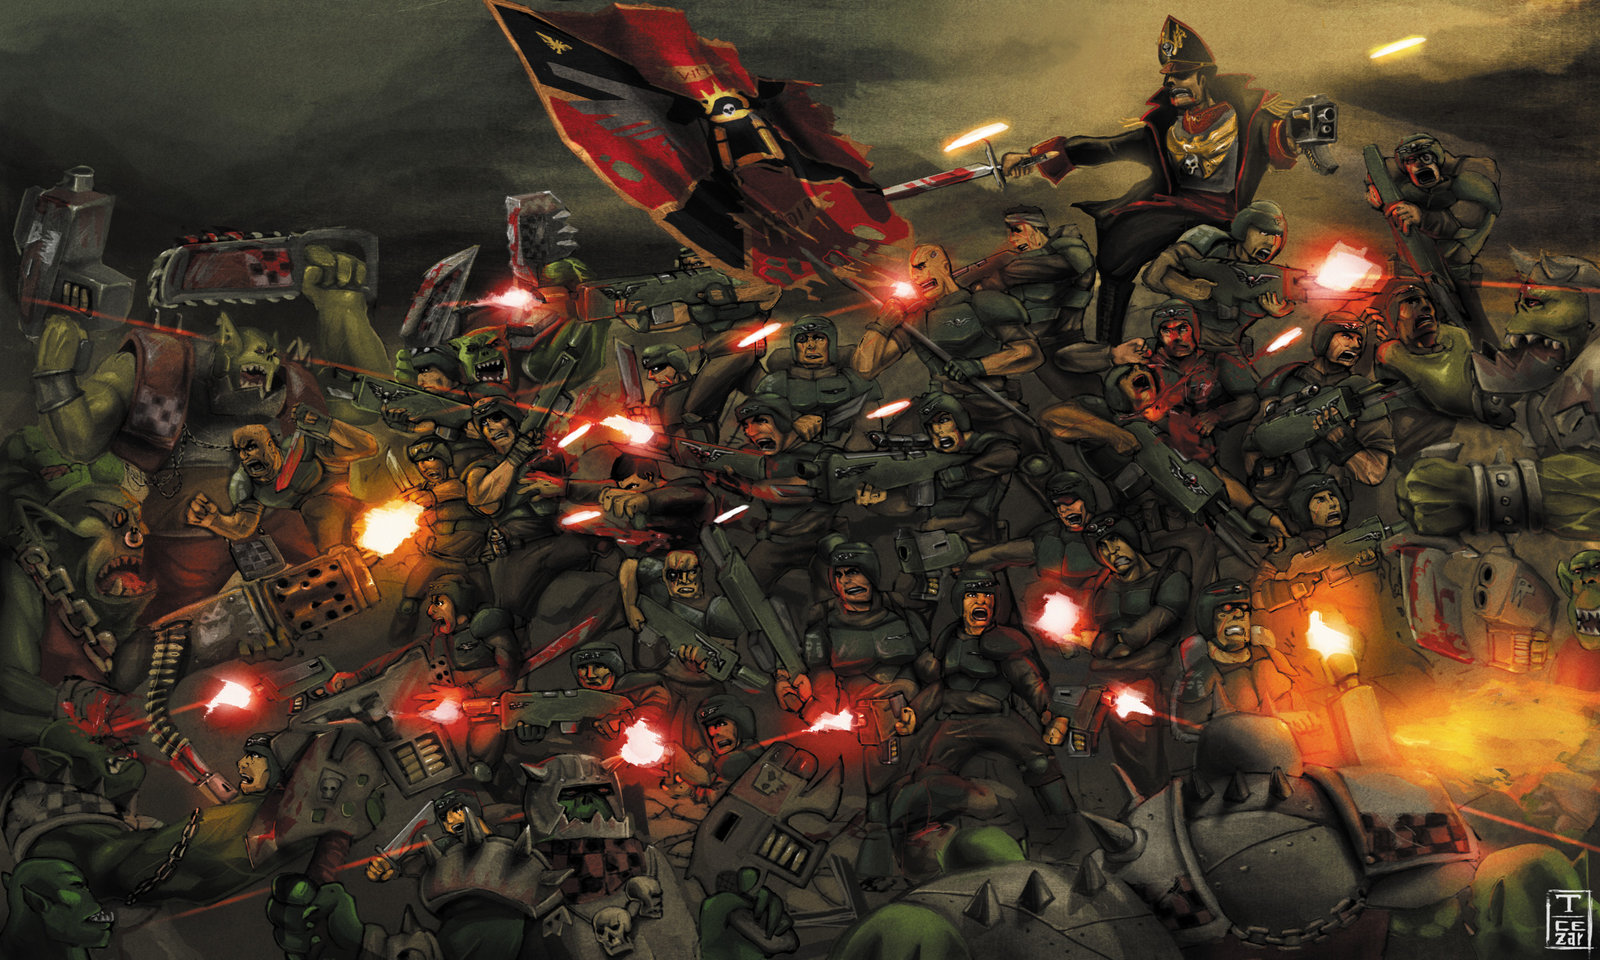 Warhammer 40k Imperial Guard Wallpaper Wallpapersafari